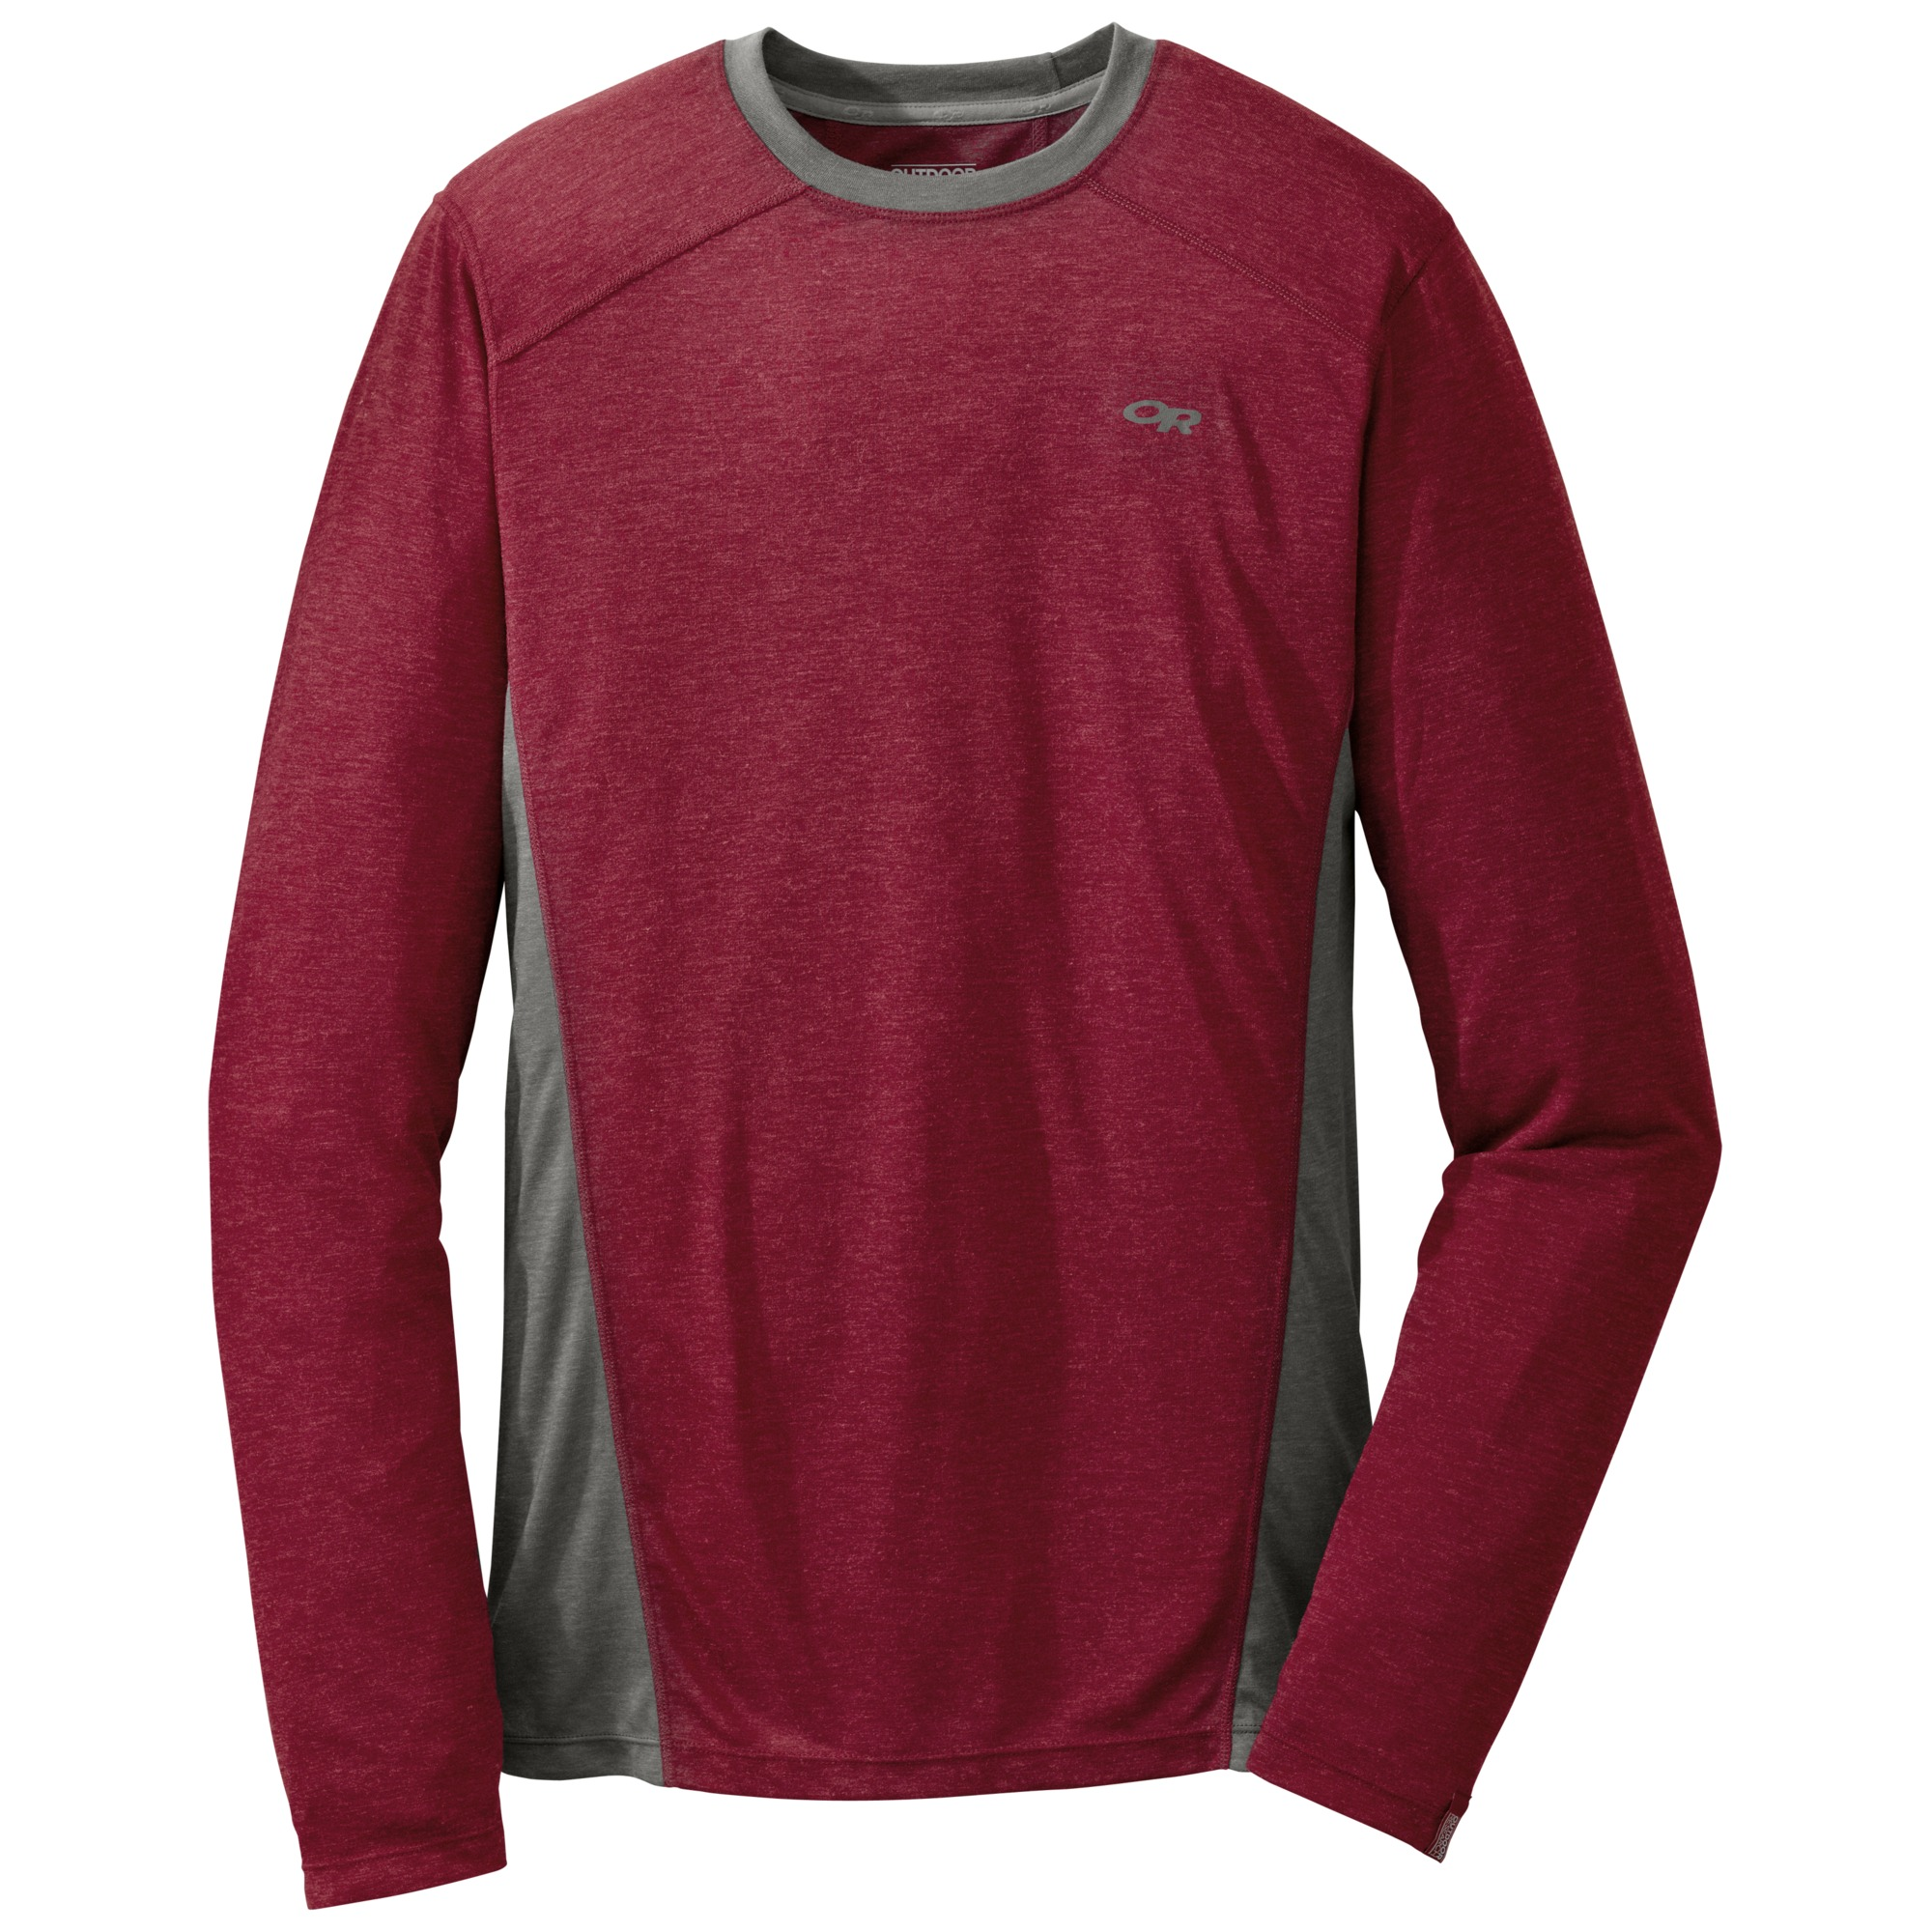 188ed3208822b Men's Sequence L/S Crew™ - redwood/charcoal | Outdoor Research